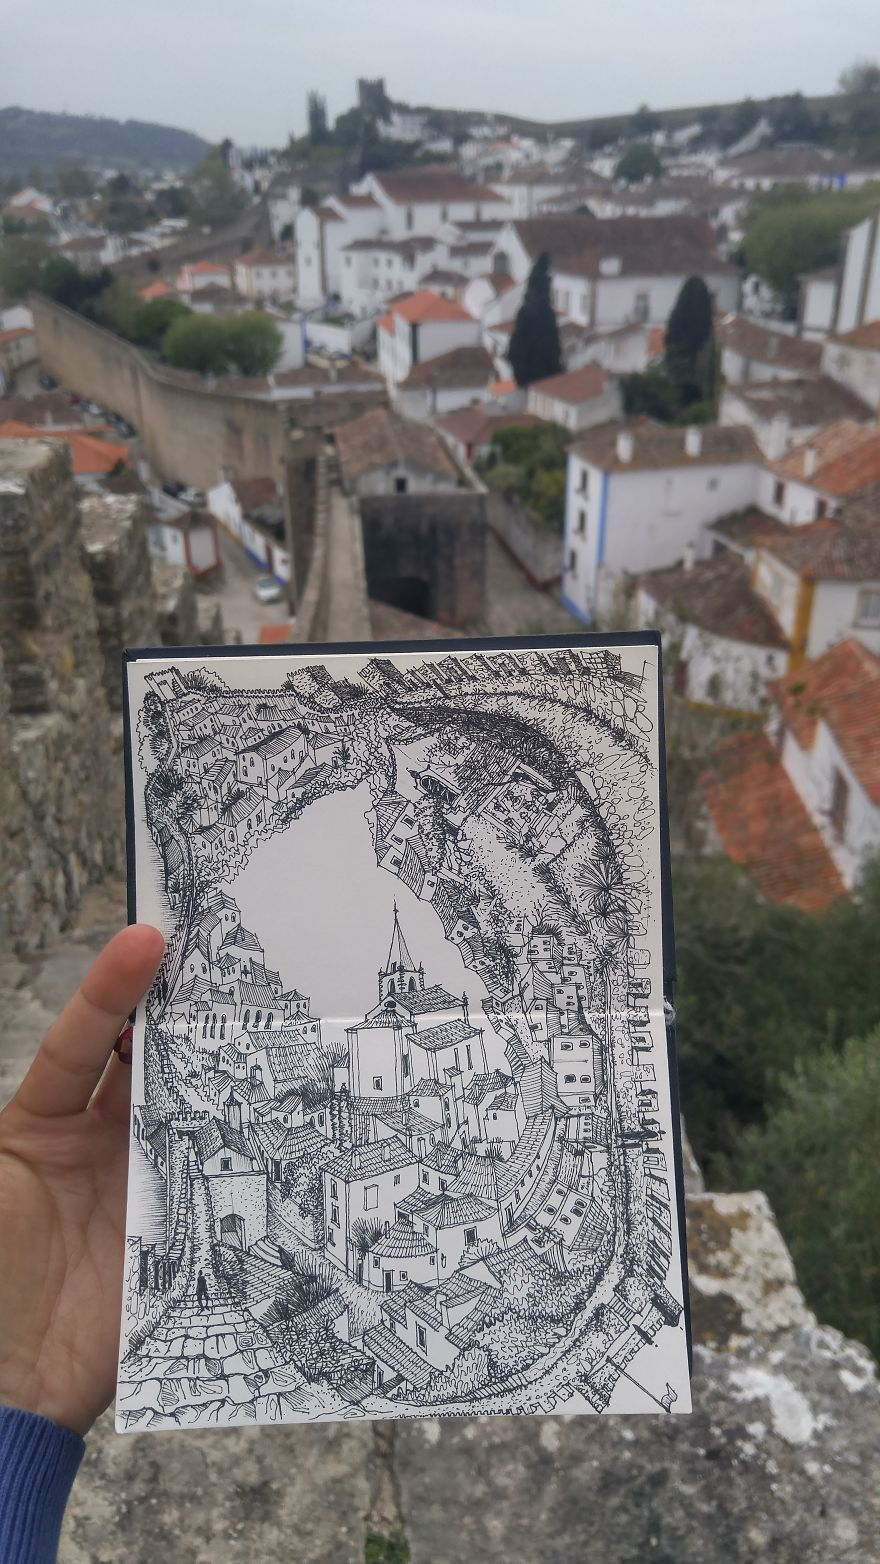 One Of My Absolute Favourite Compositions Depicting The City Of Obidos, Portugal With The Castel Walls Surrounding The Old Town